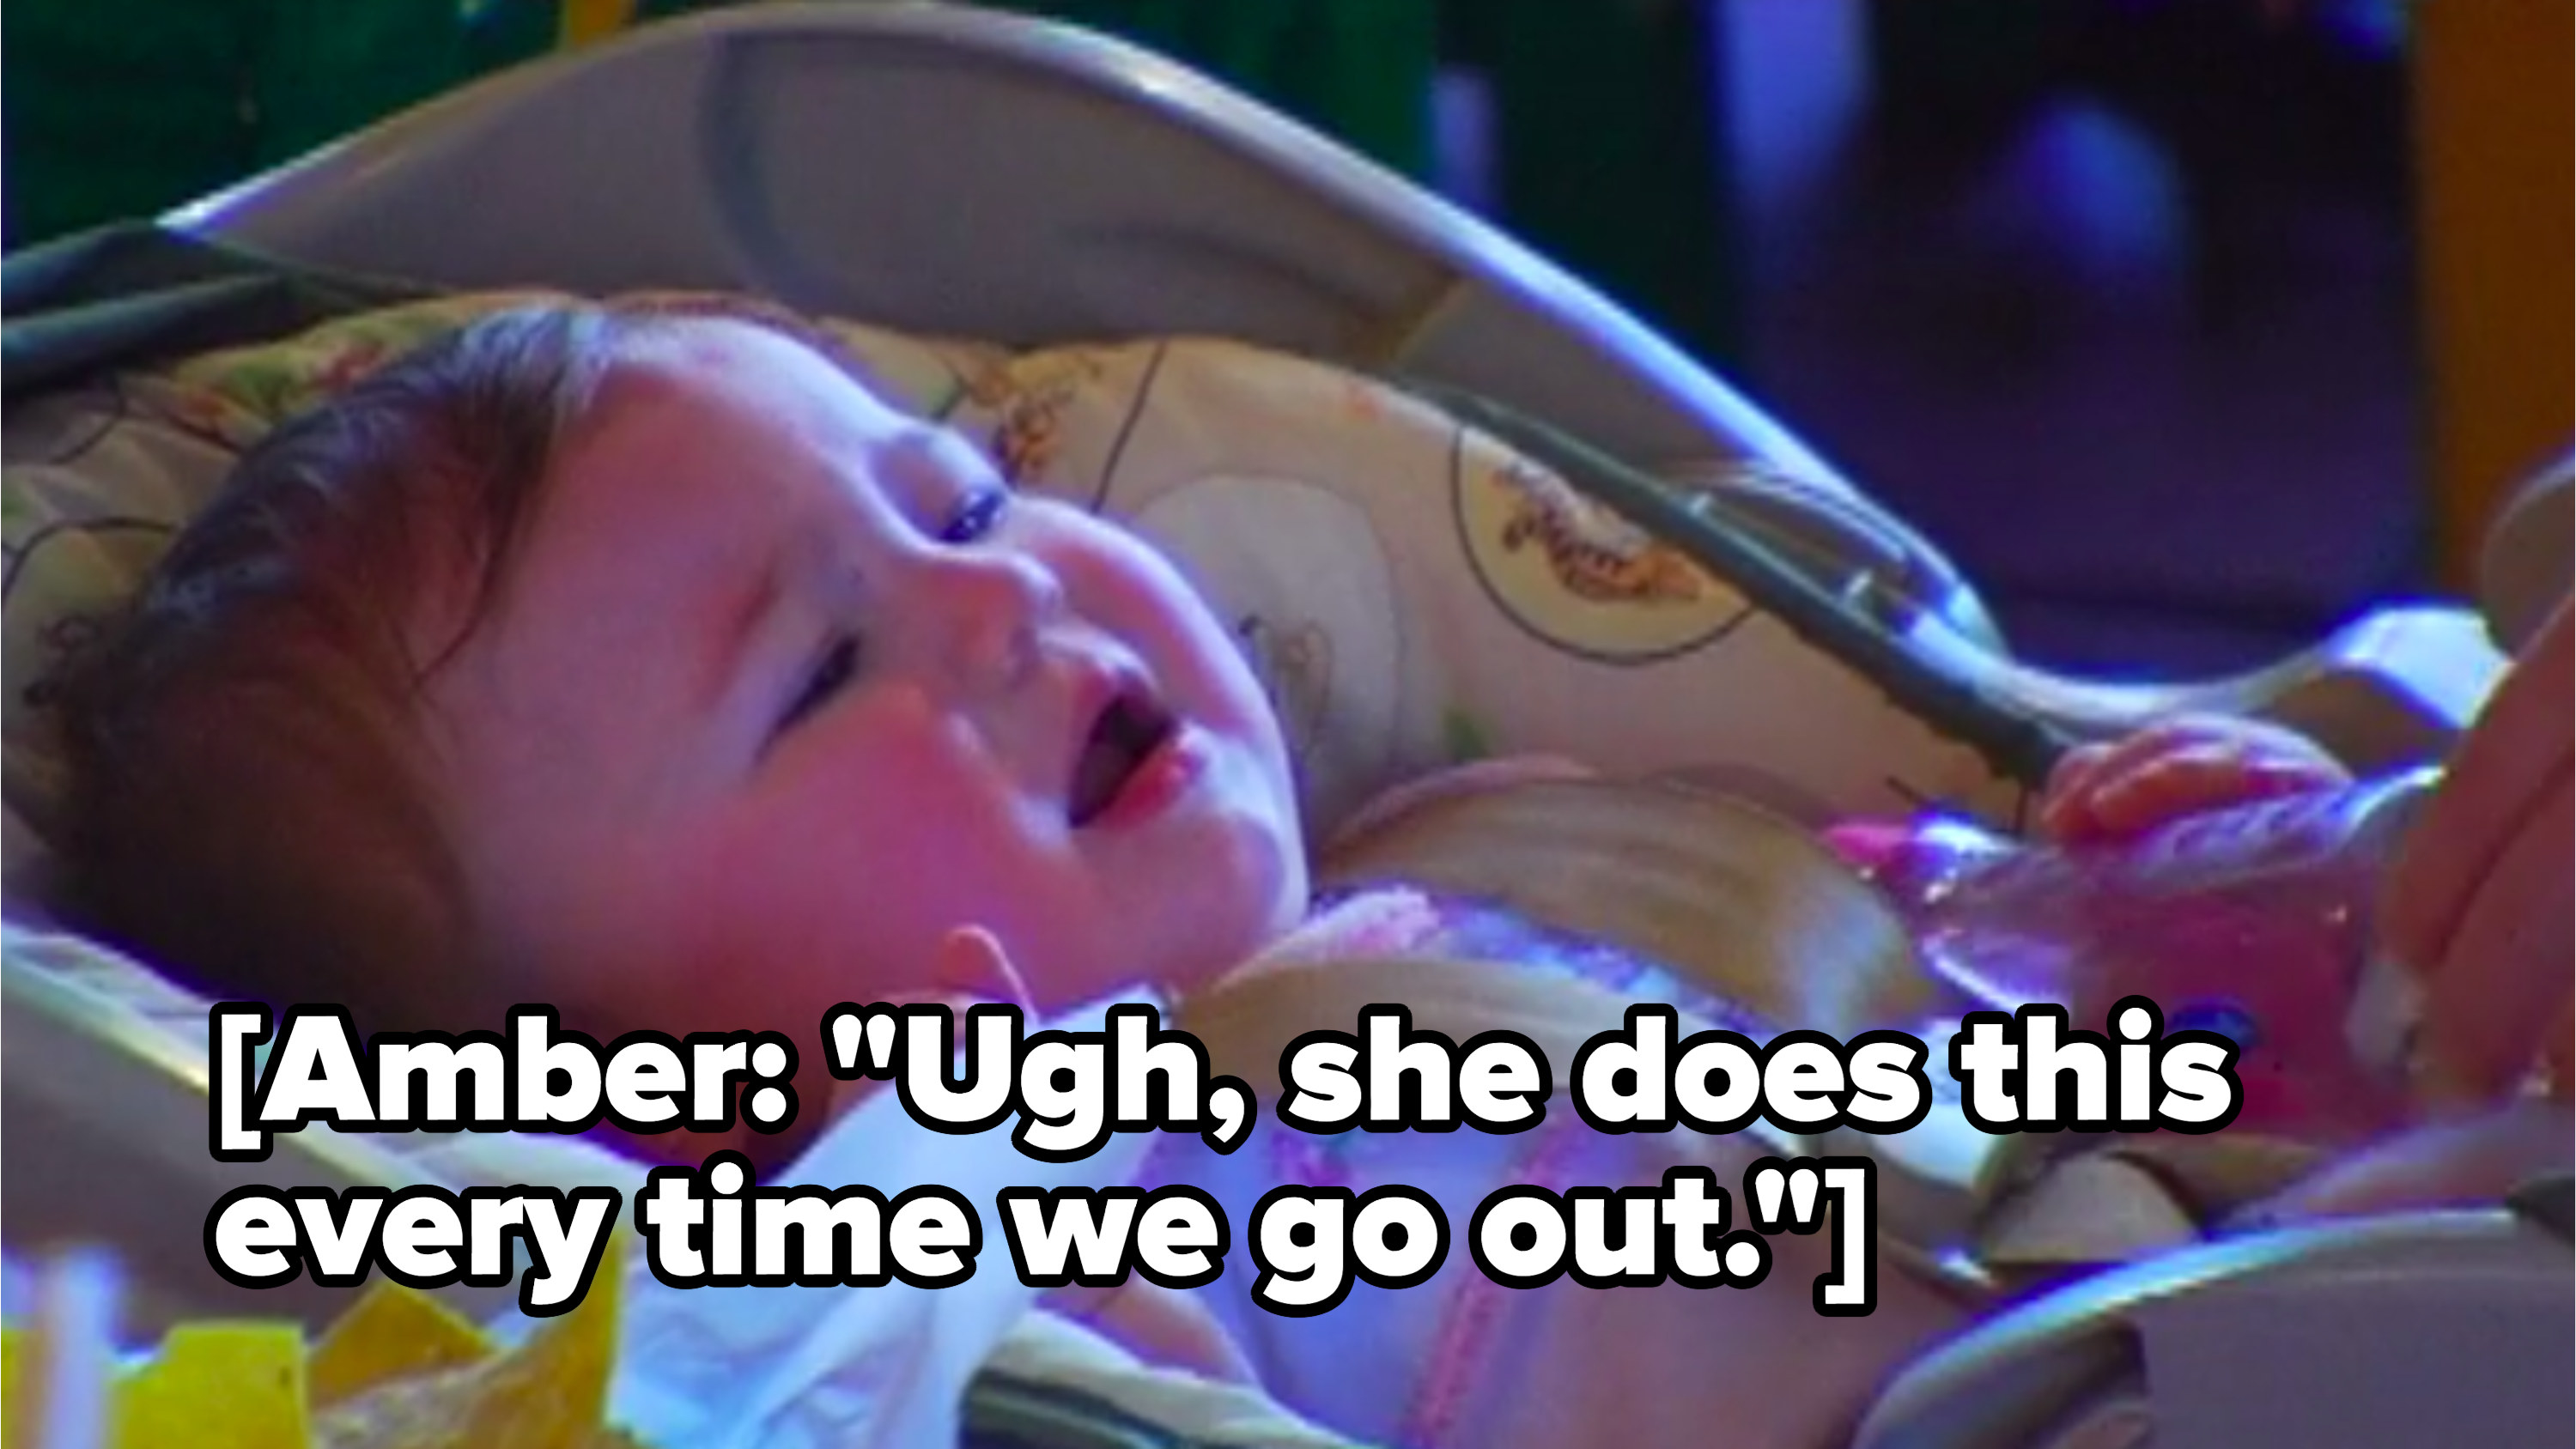 Amber complains that Leah always cries when they go out